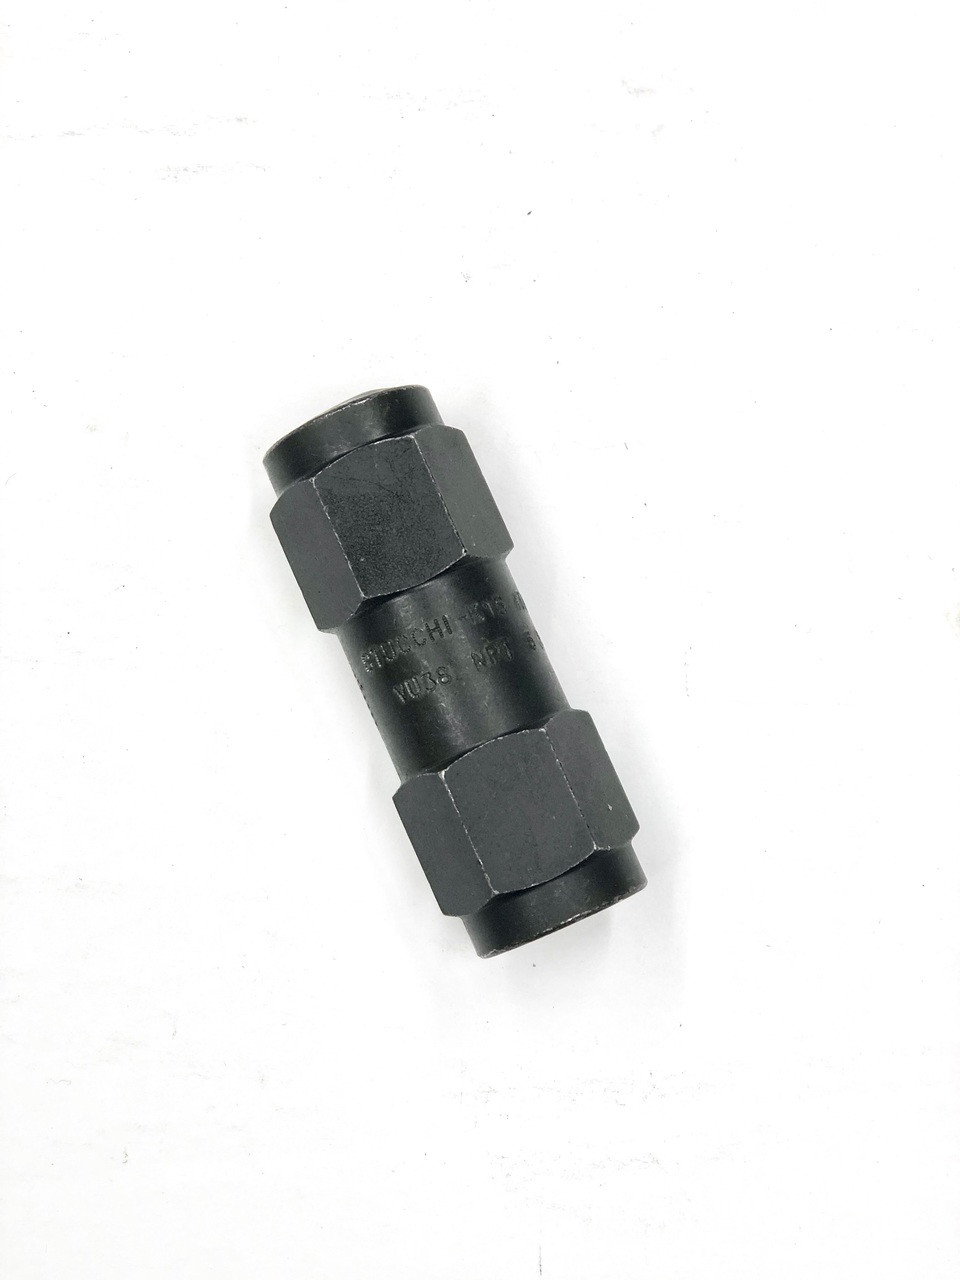 3/8 Stucchi Check Valve